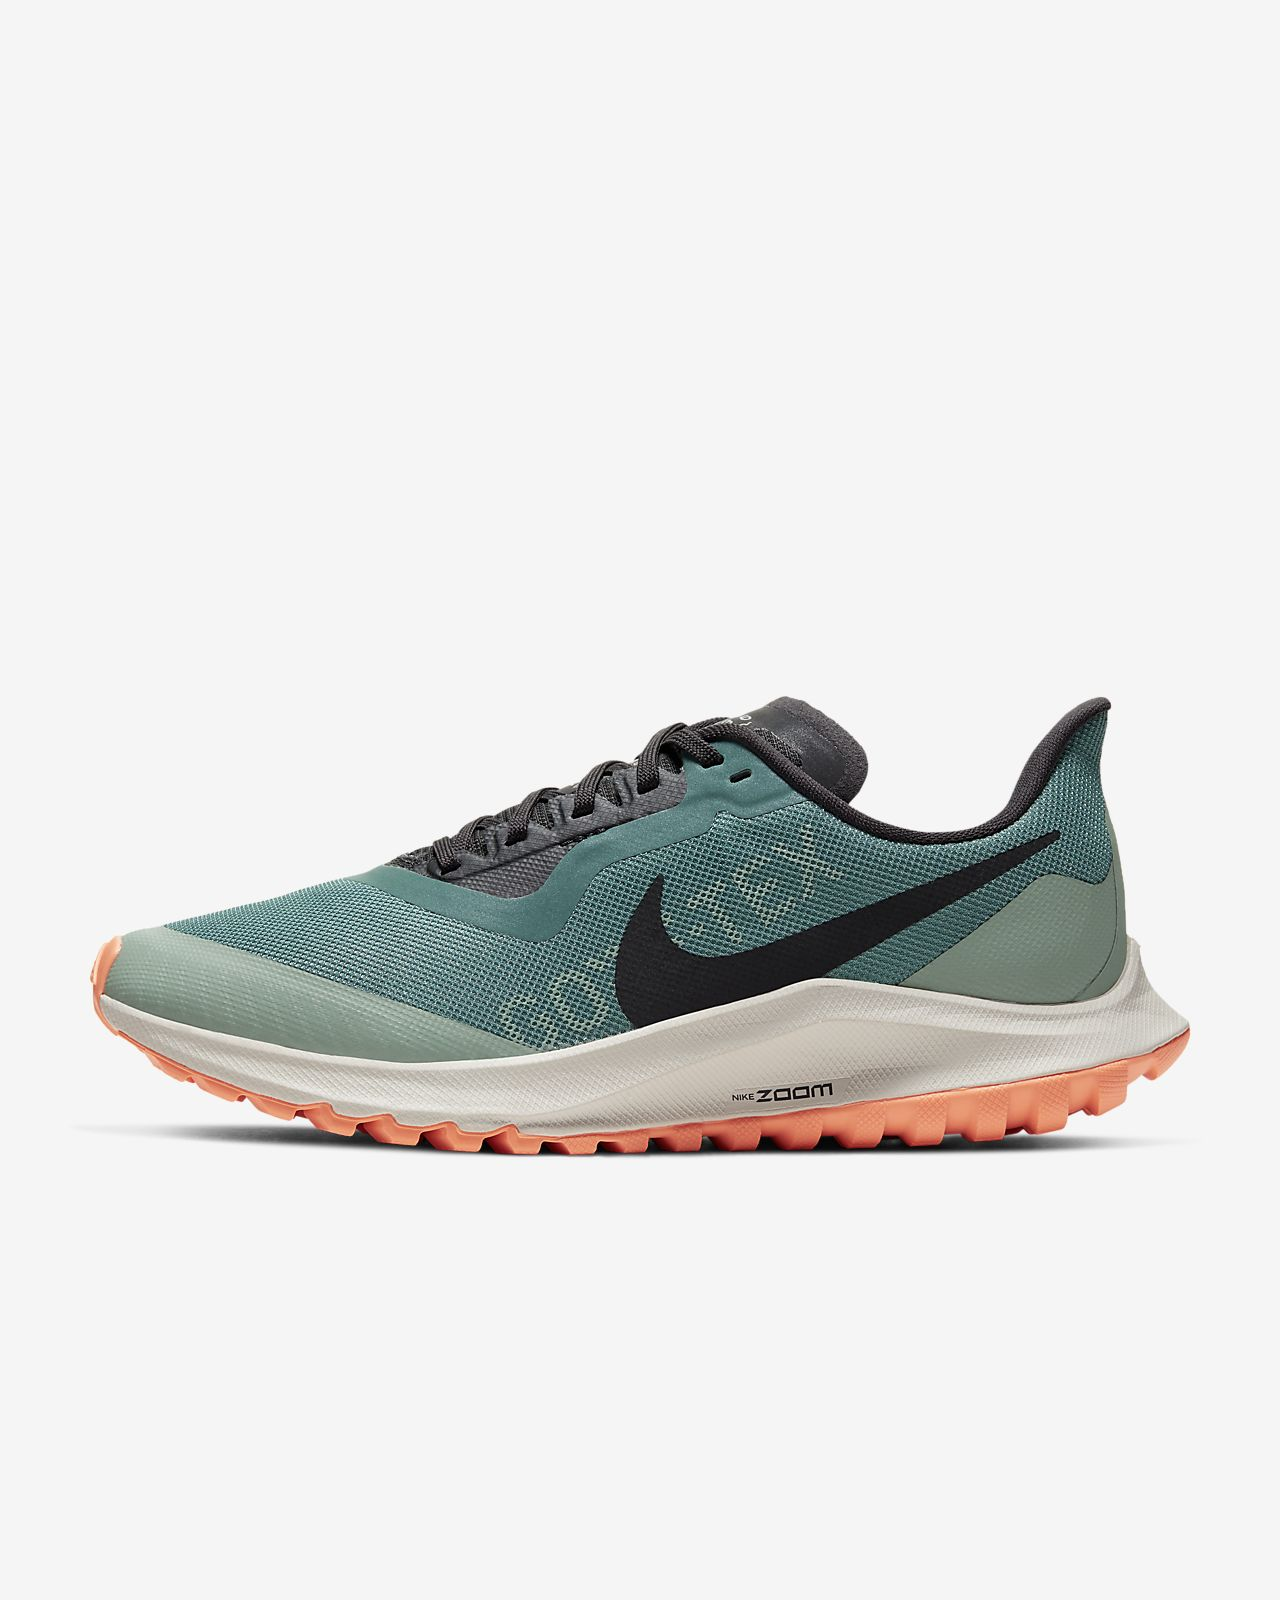 Nike Zoom Pegasus 36 Trail GORE-TEX Women's Trail Running Shoe